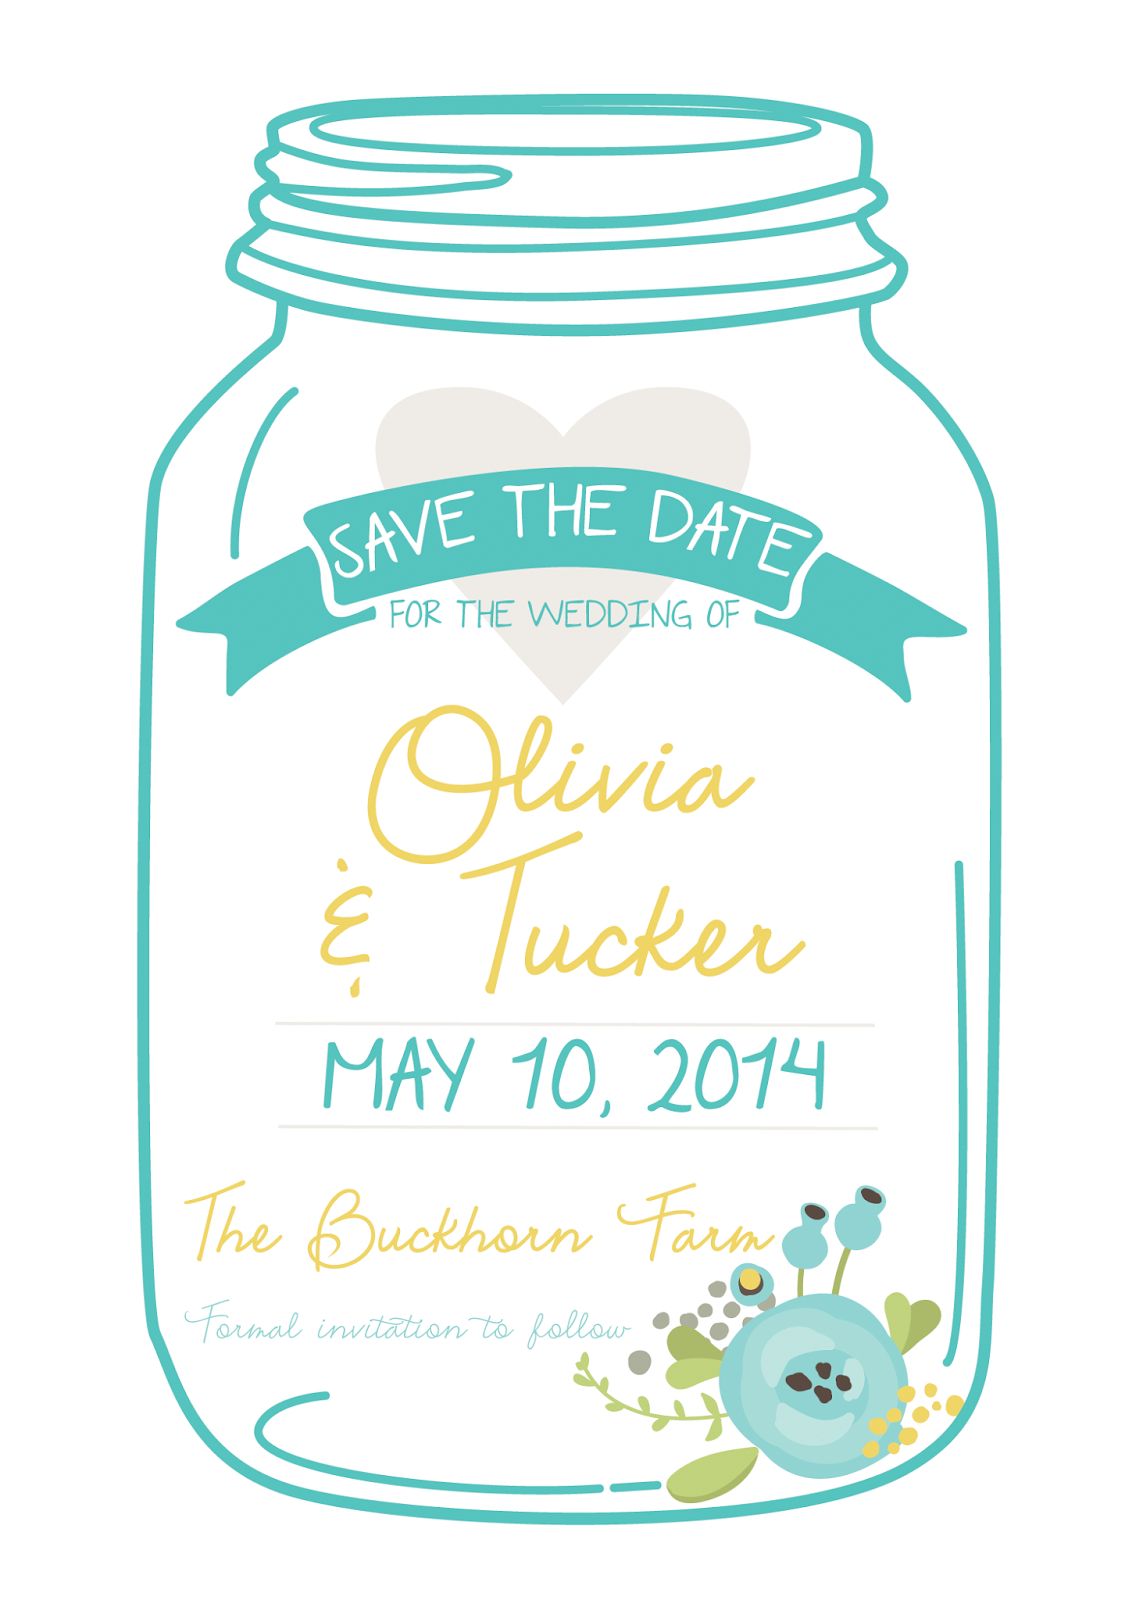 010 Mason Jar Invitation Template Ideas Outstanding Free Wedding - Free Mason Jar Wedding Invitation Printable Templates